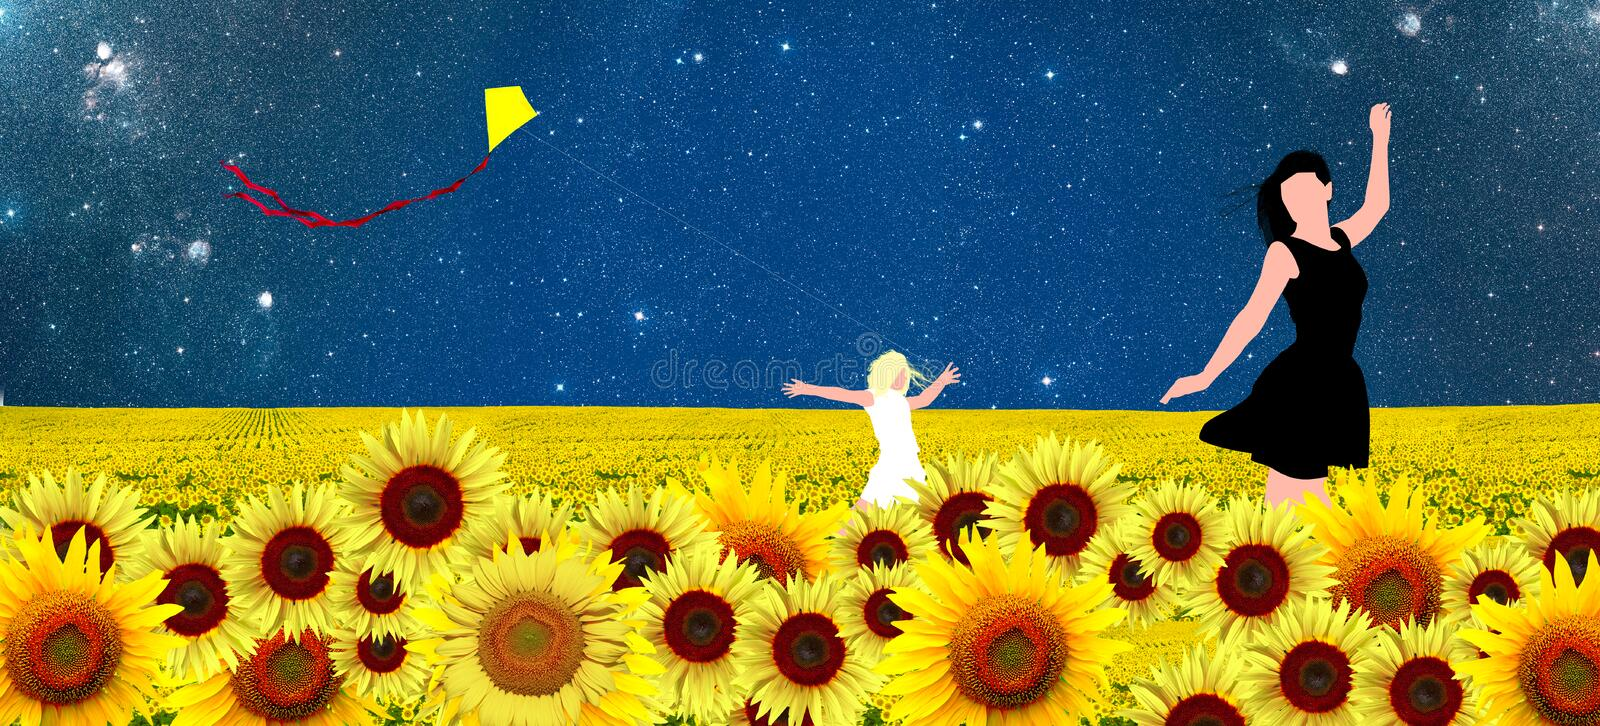 Mother and Daughter walking in a sunflowers field vector illustration